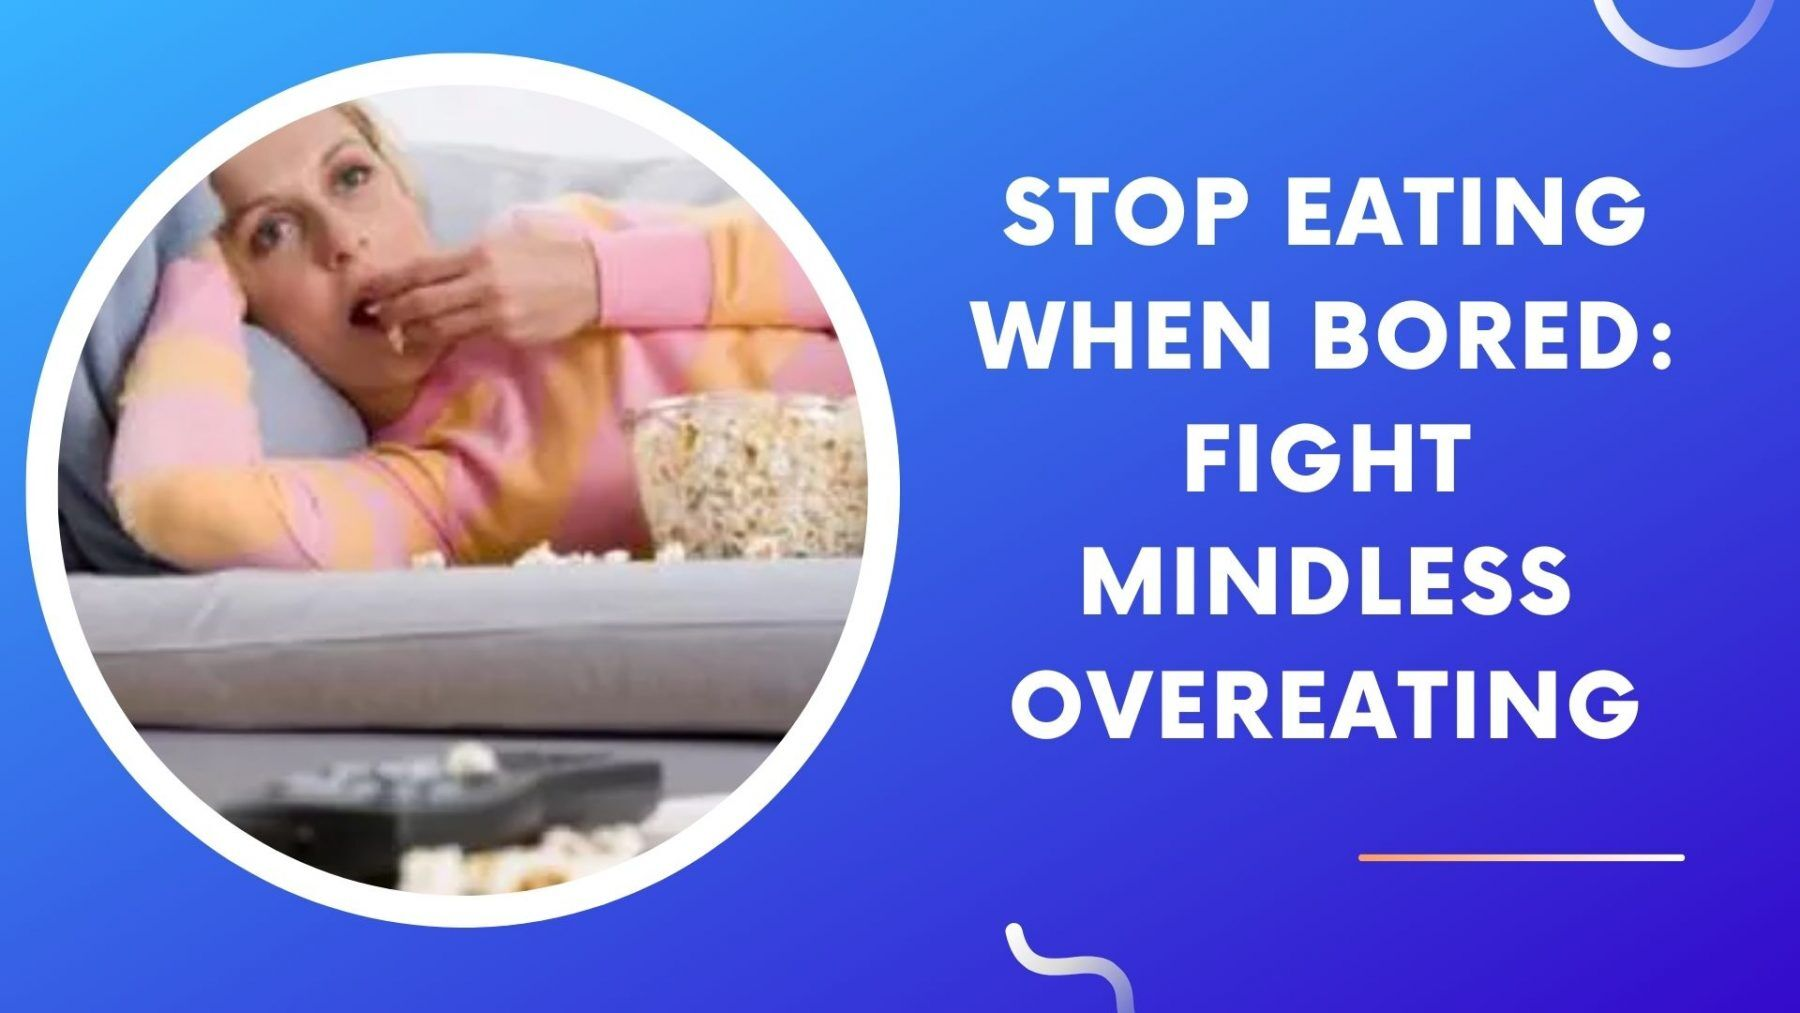 Stop Eating When Bored_ Fight Mindless Overeating